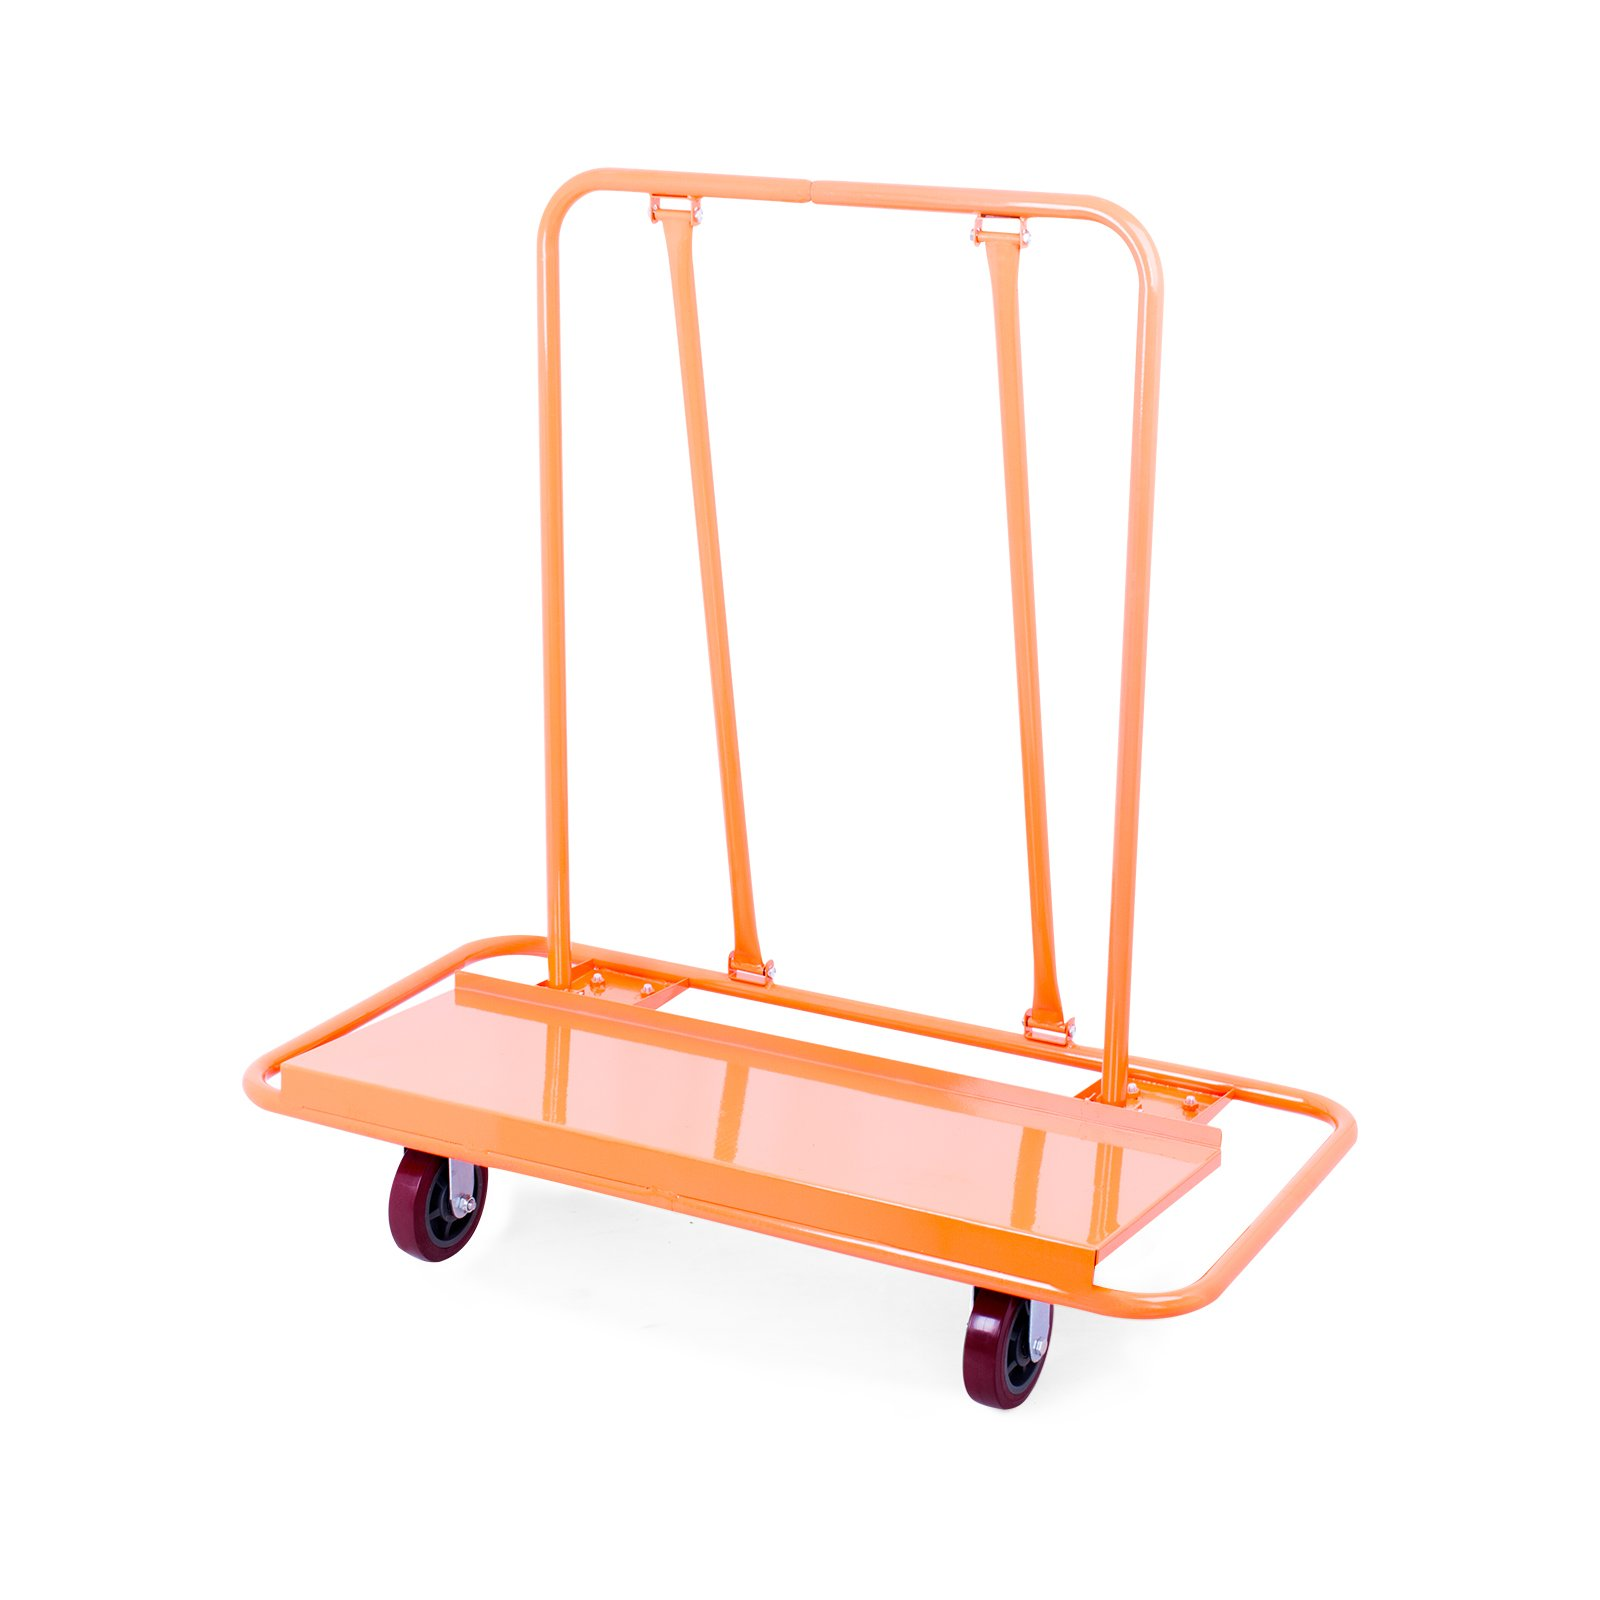 BestEquip Drywall Cart 3000lbs Capacity Drywall Cart Dolly Utility Handling Sheetrock Panel 45 x 12 Inch Deck Size